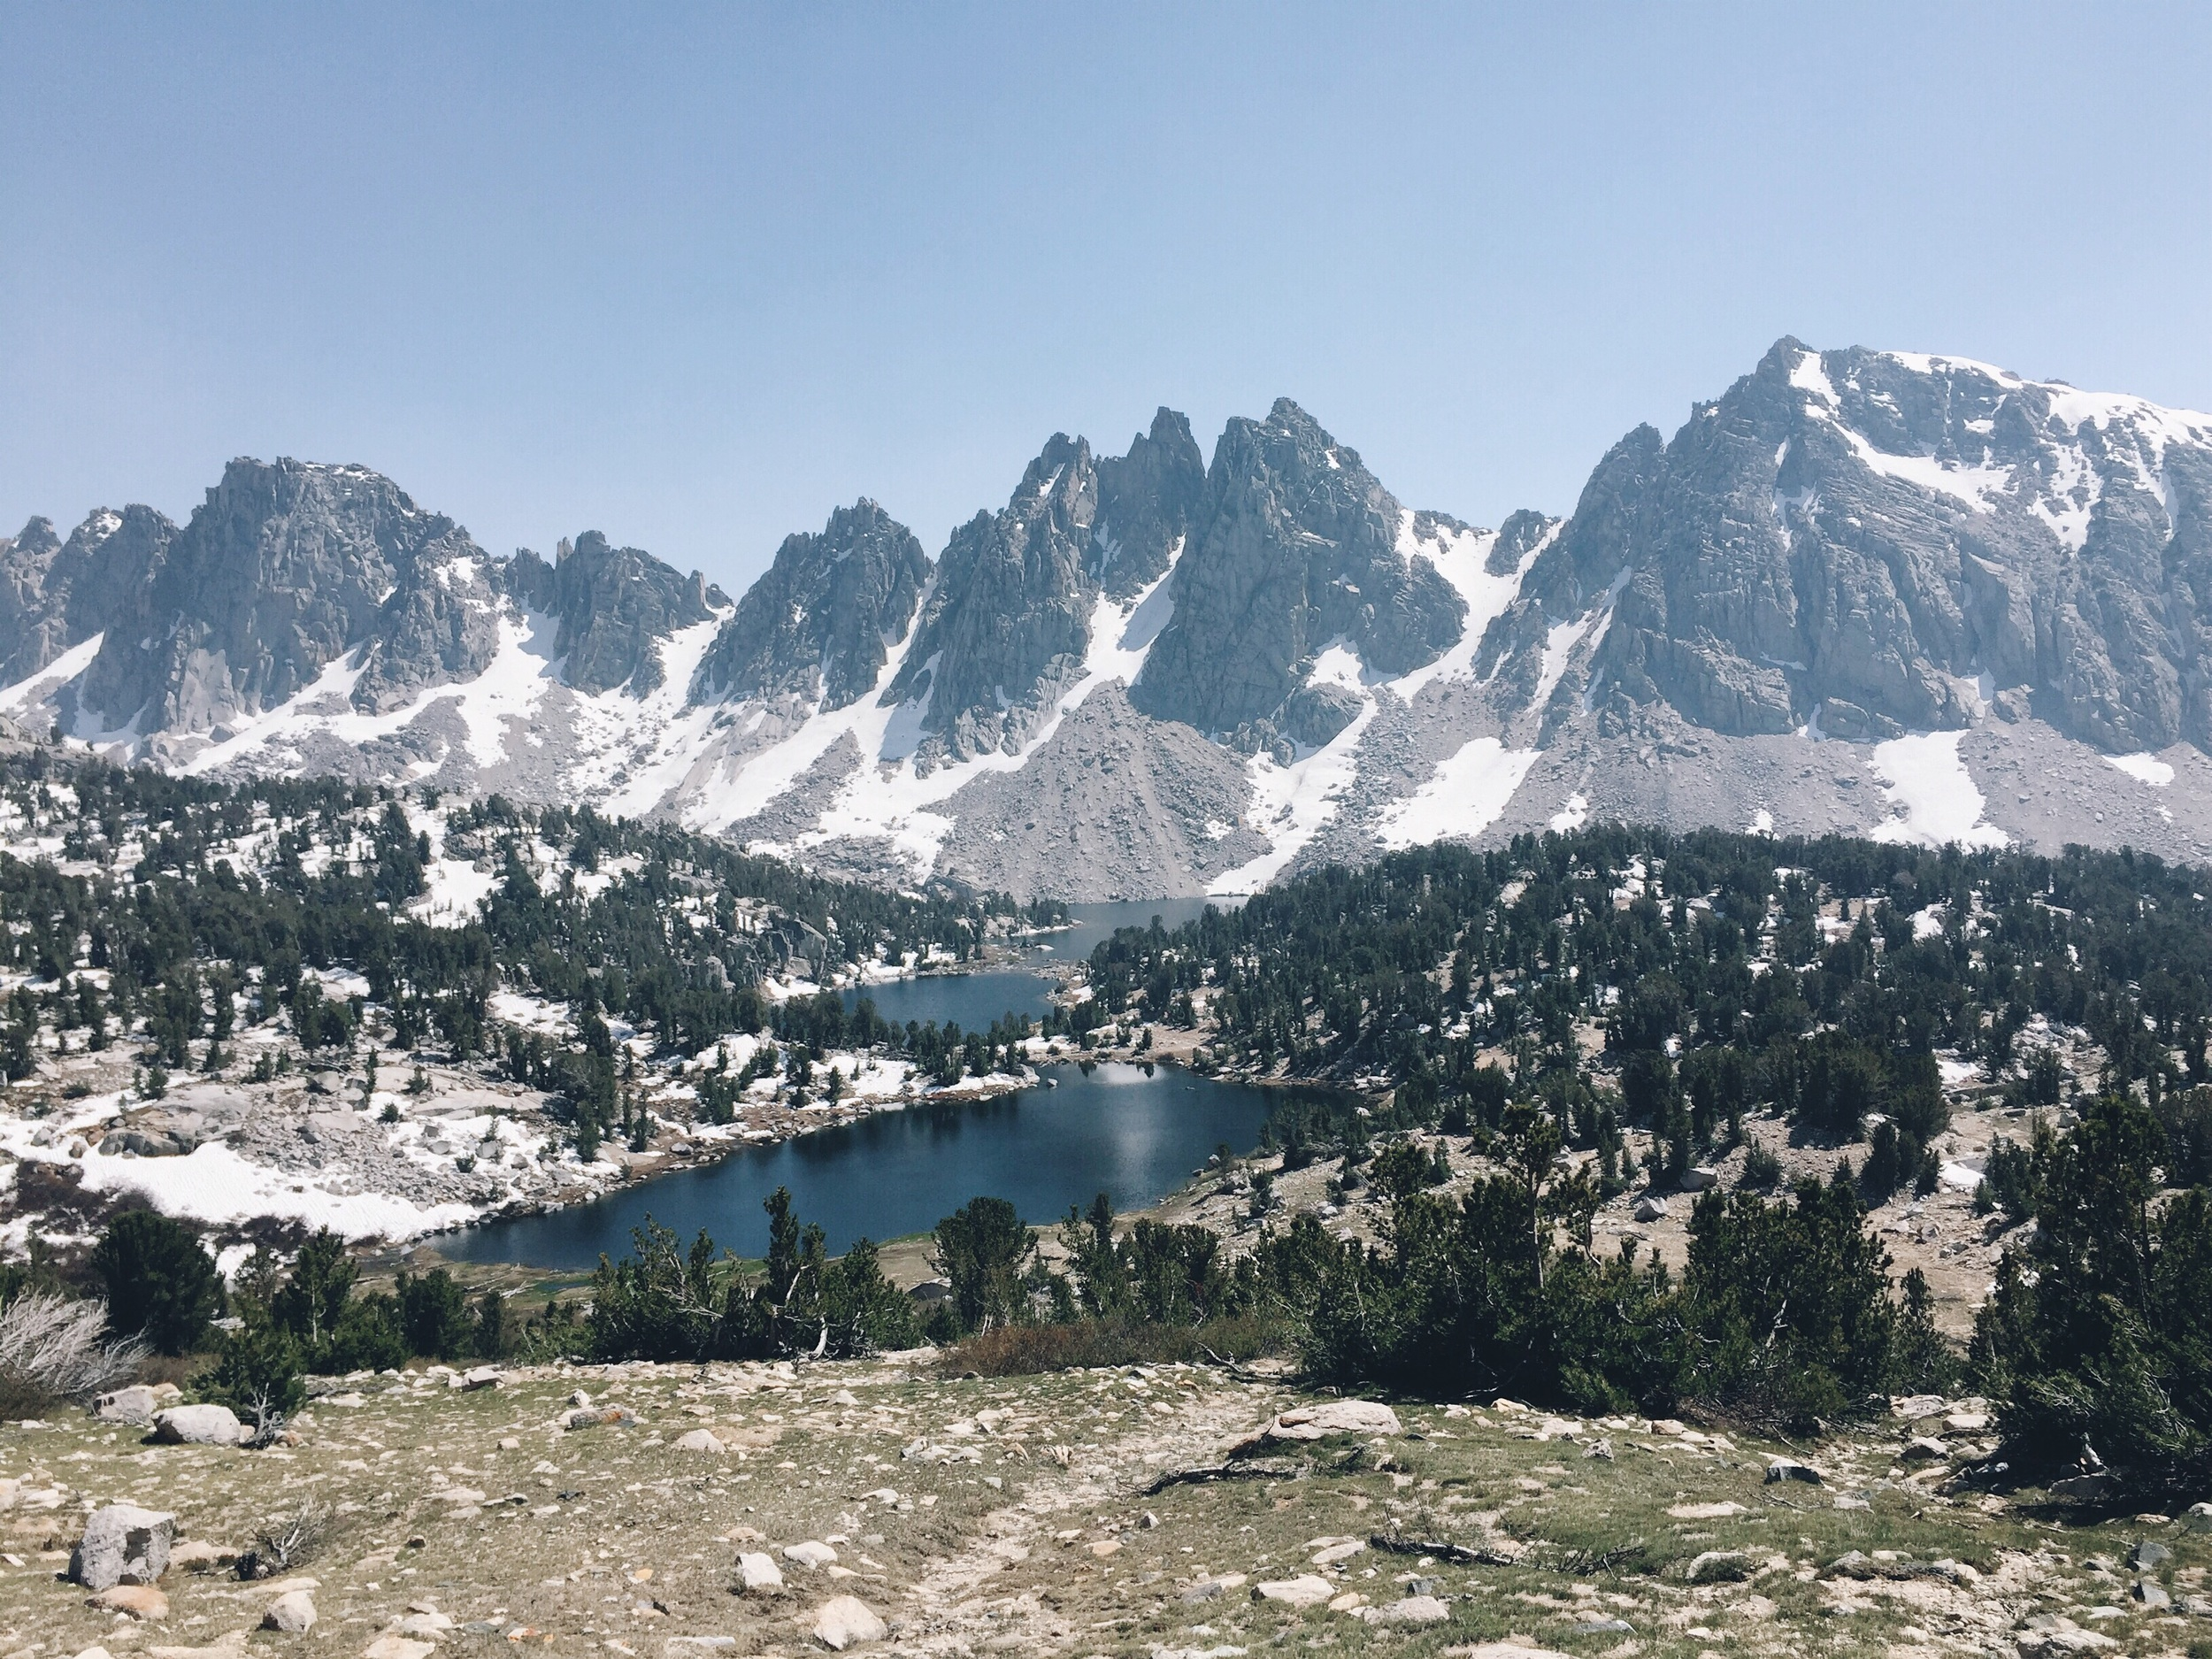 The view looking down as we climbed up to kearsarge pass.